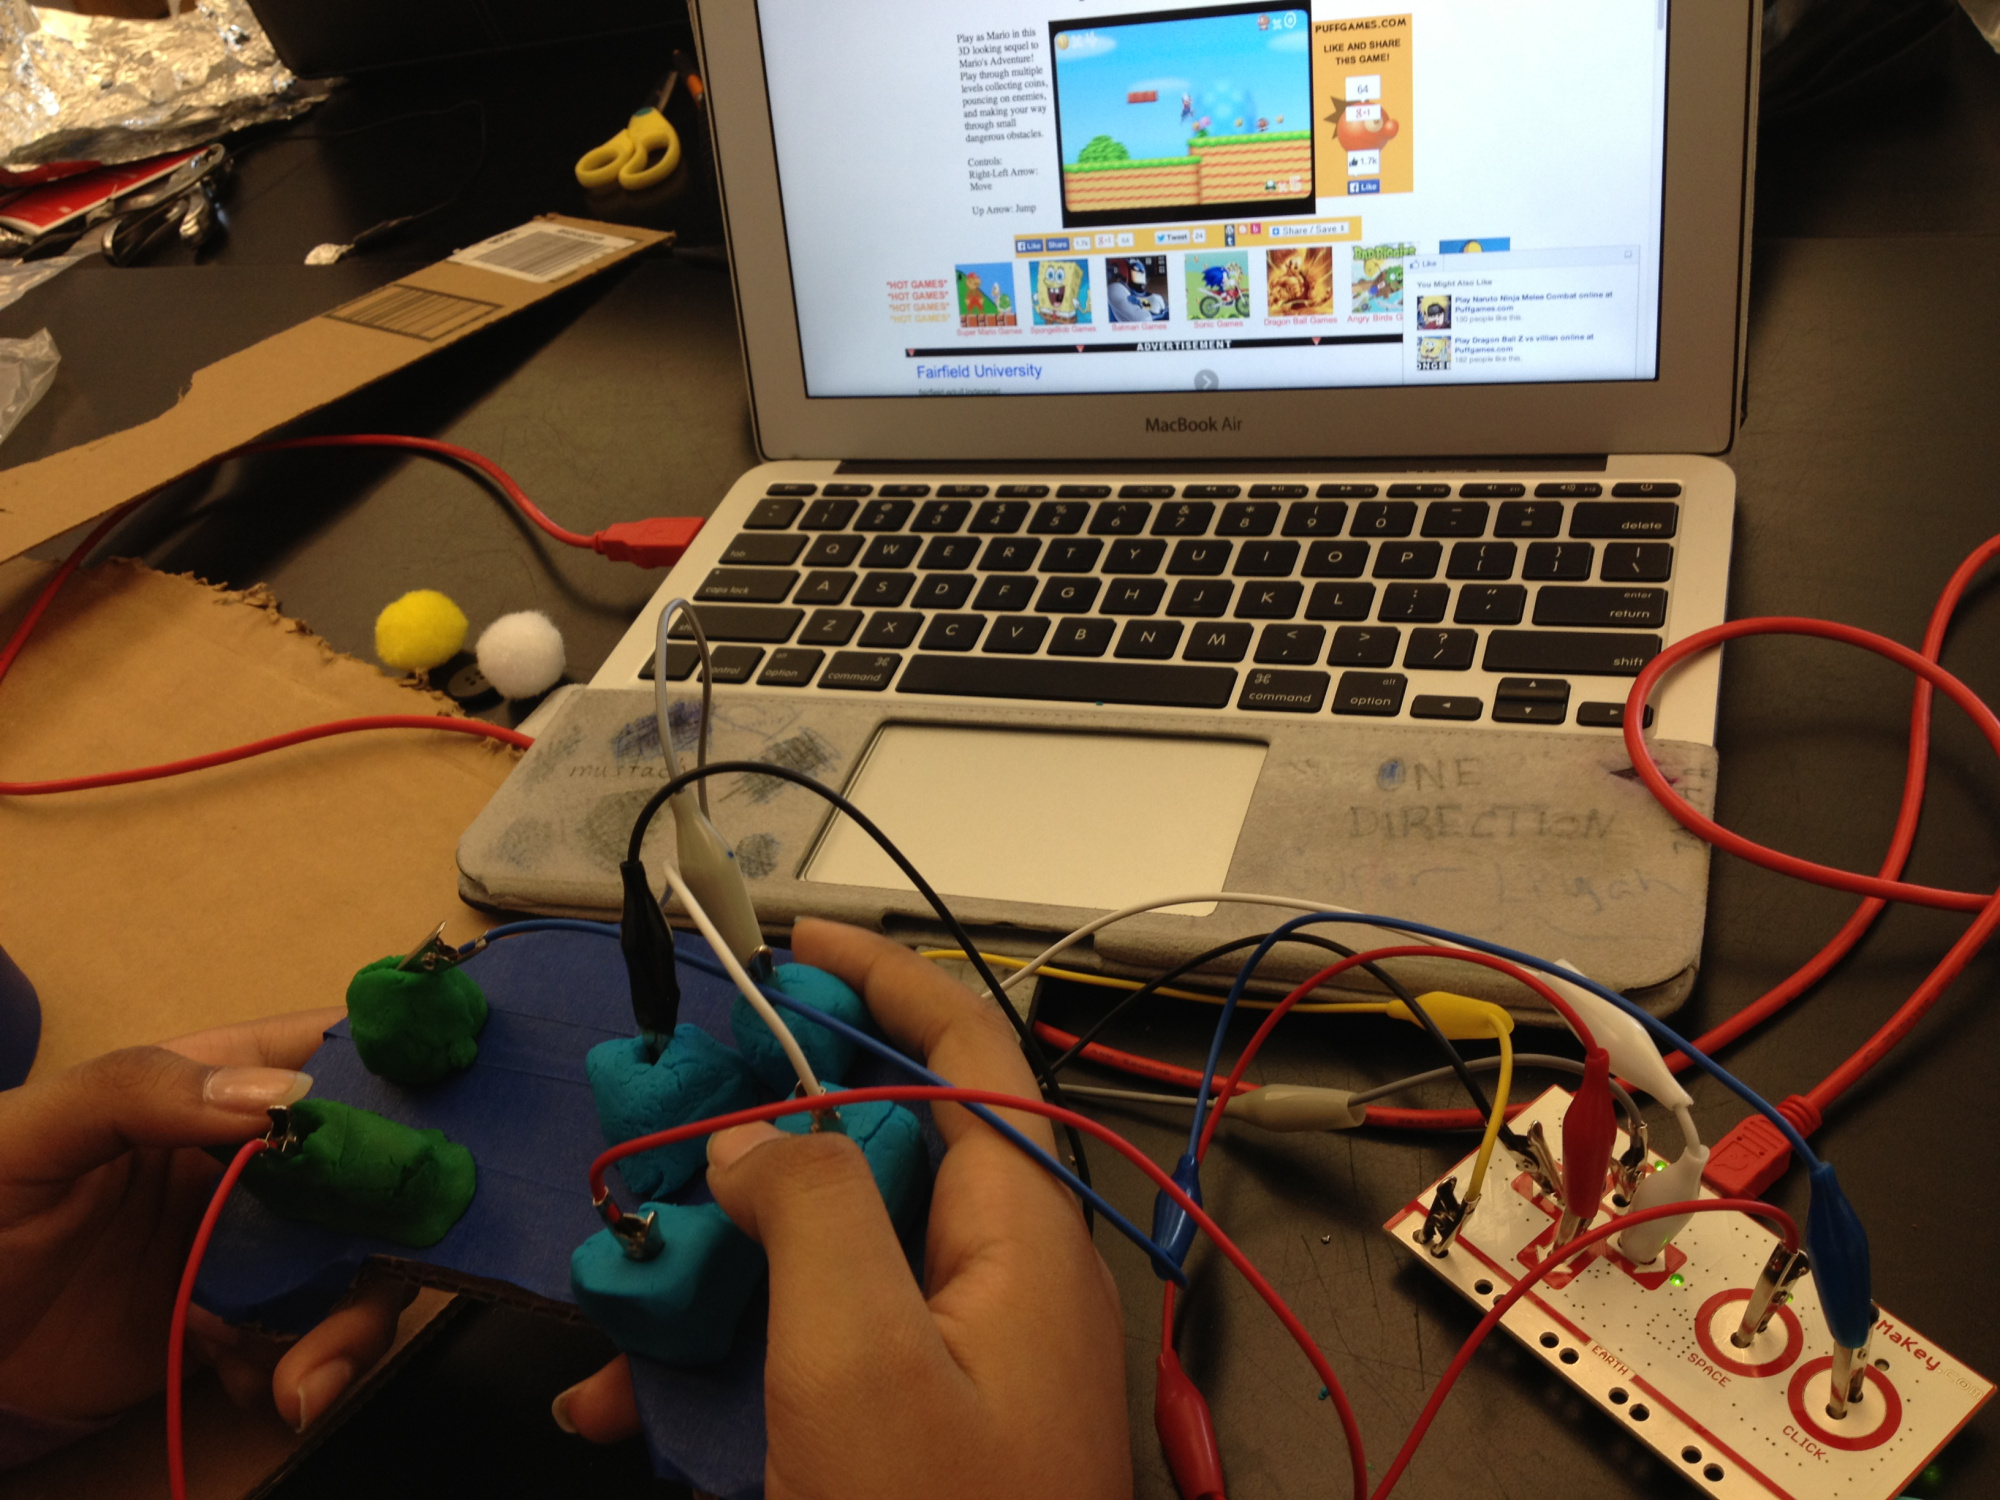 Photo of a video game controller made by Dylan Ryder's students